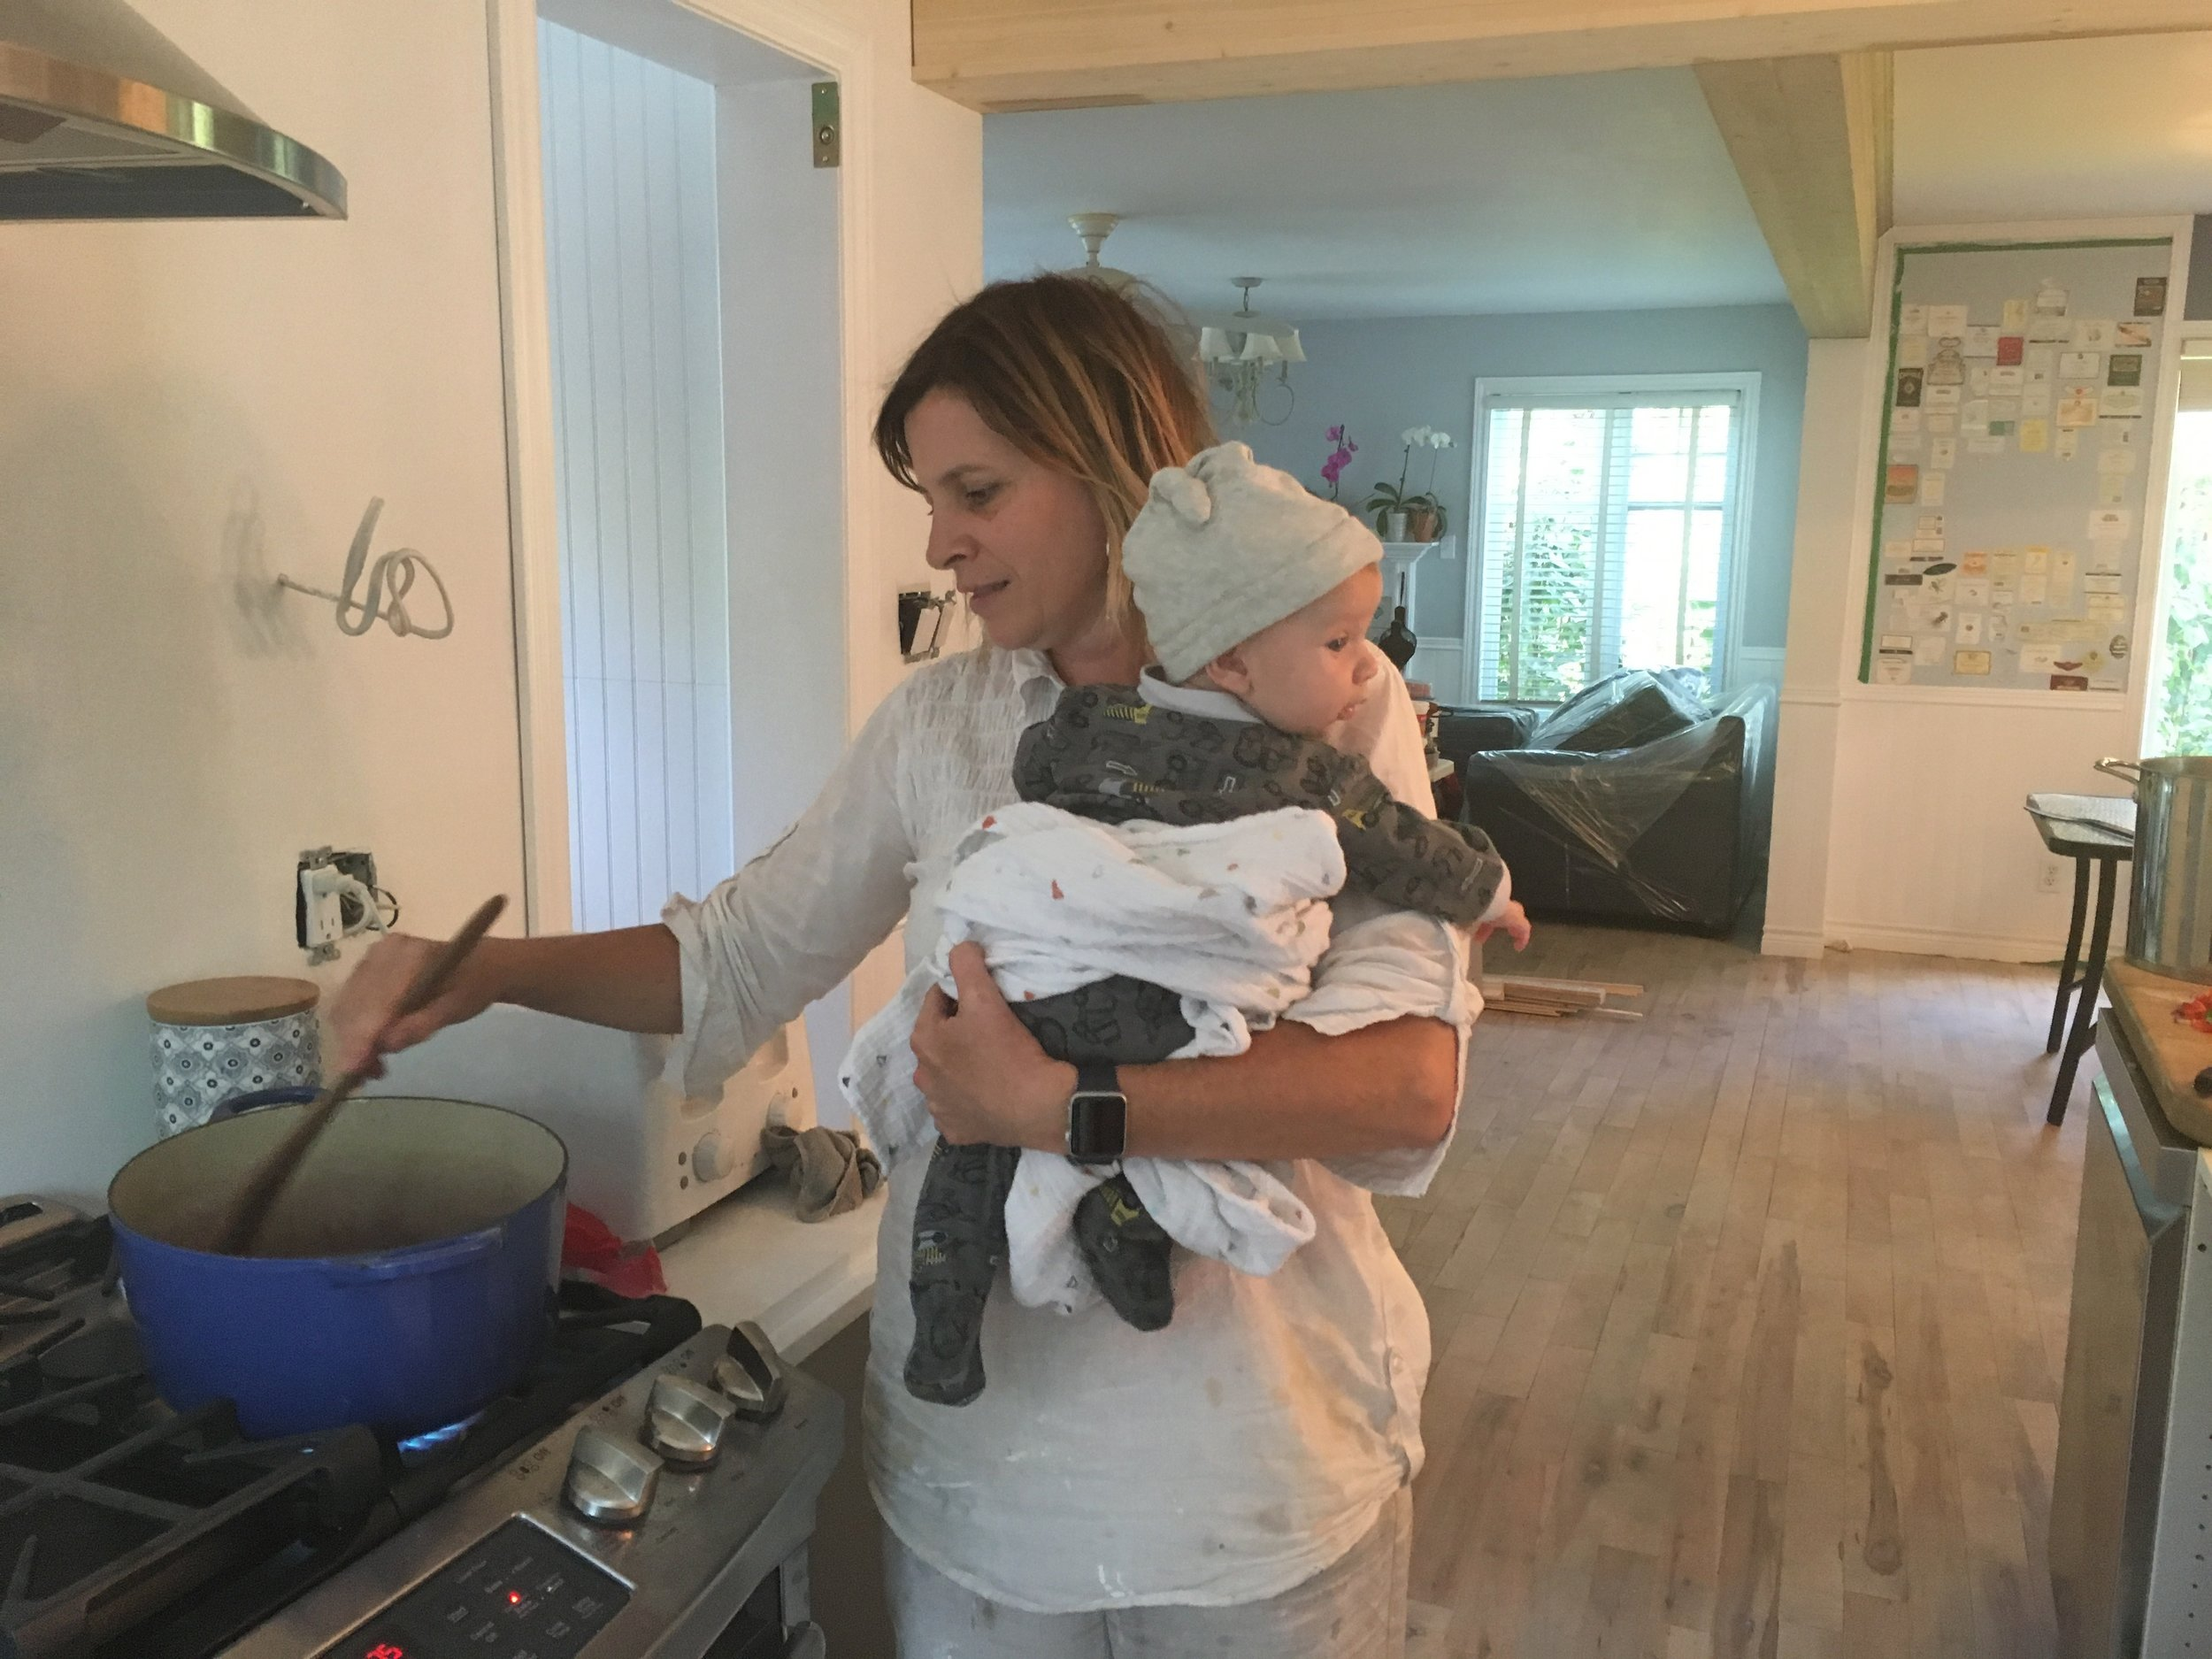 Painting, cooking, soothing 4 month old William